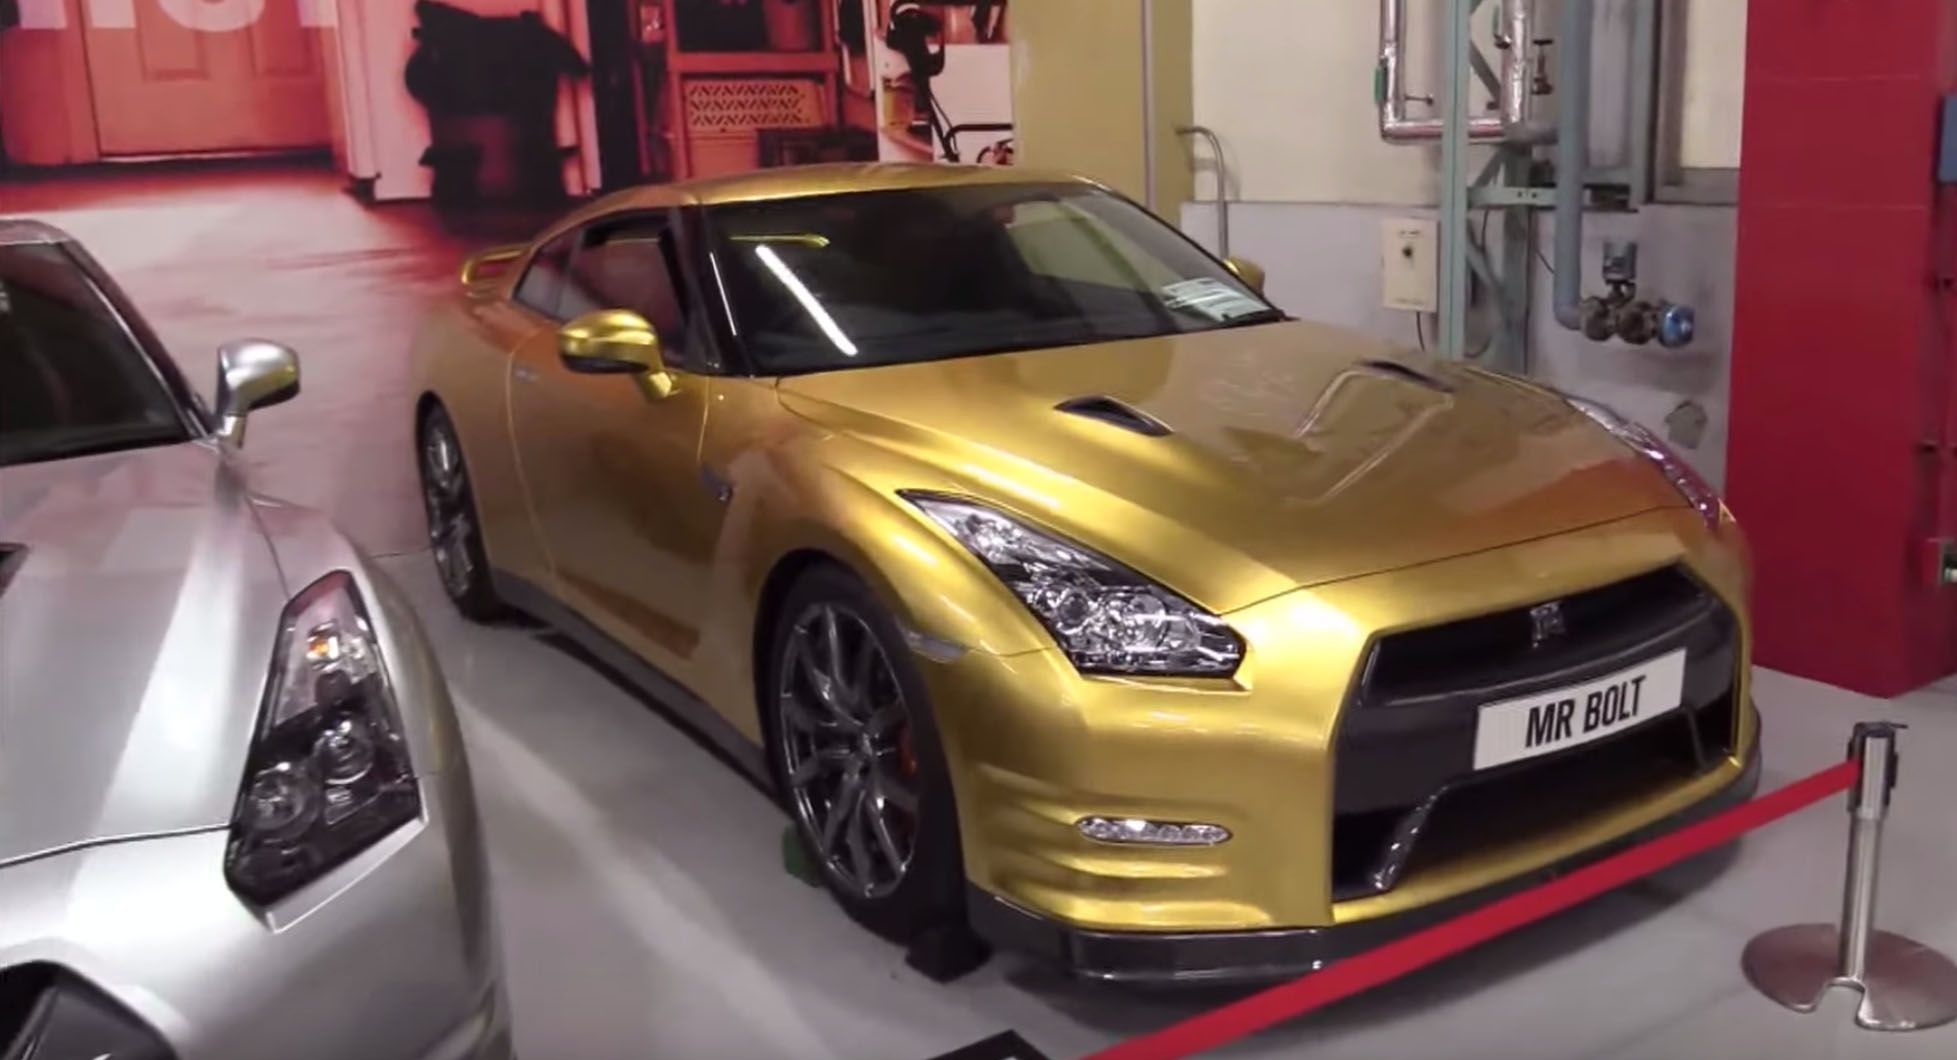 "<img src=""heritage-collection.jpg"" alt=""Nissan GT-R inside the heritage collection in Japan"">"